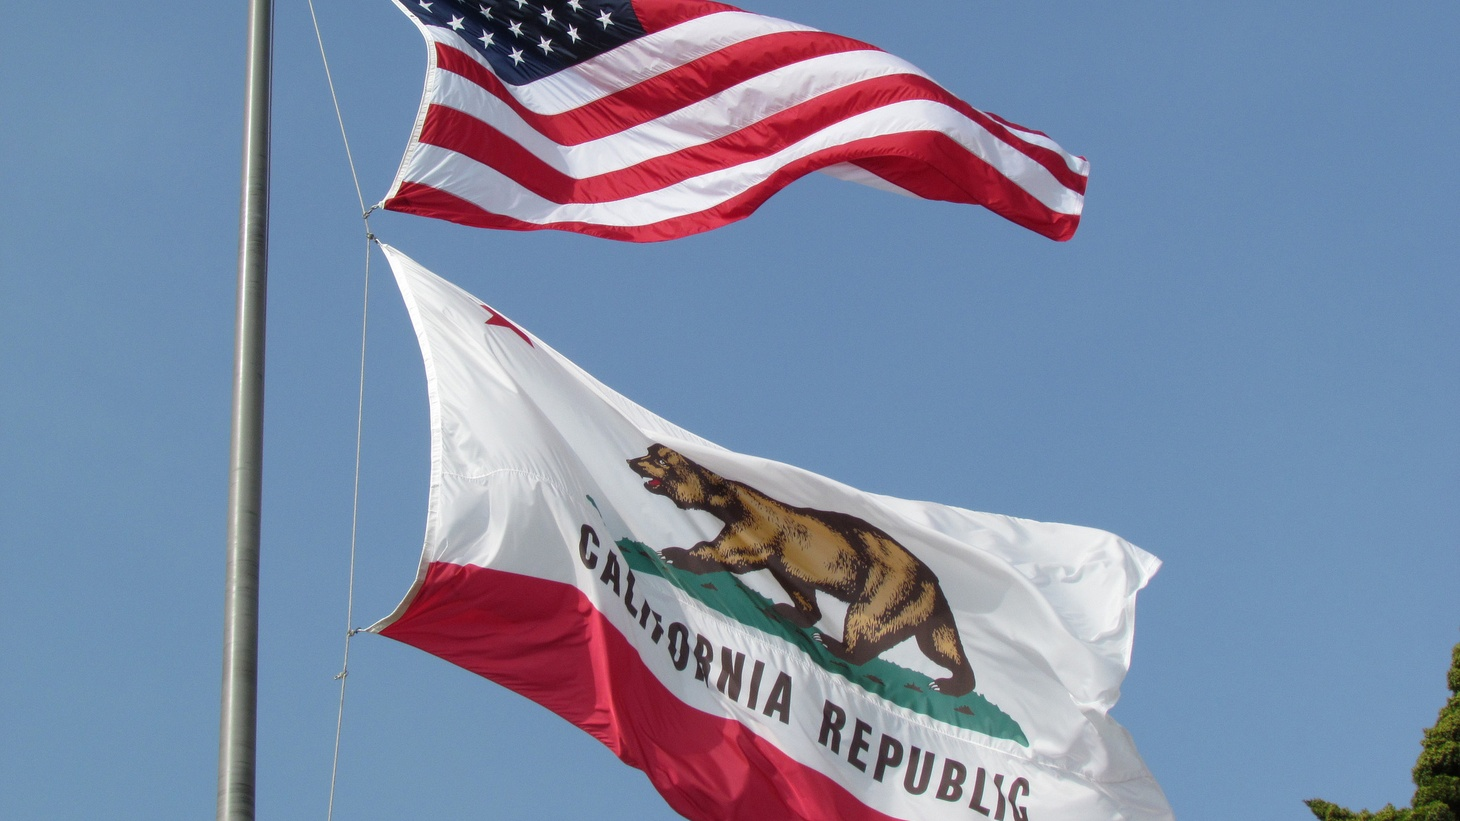 California has more billionaires than any other state and they're pouring millions into this election.